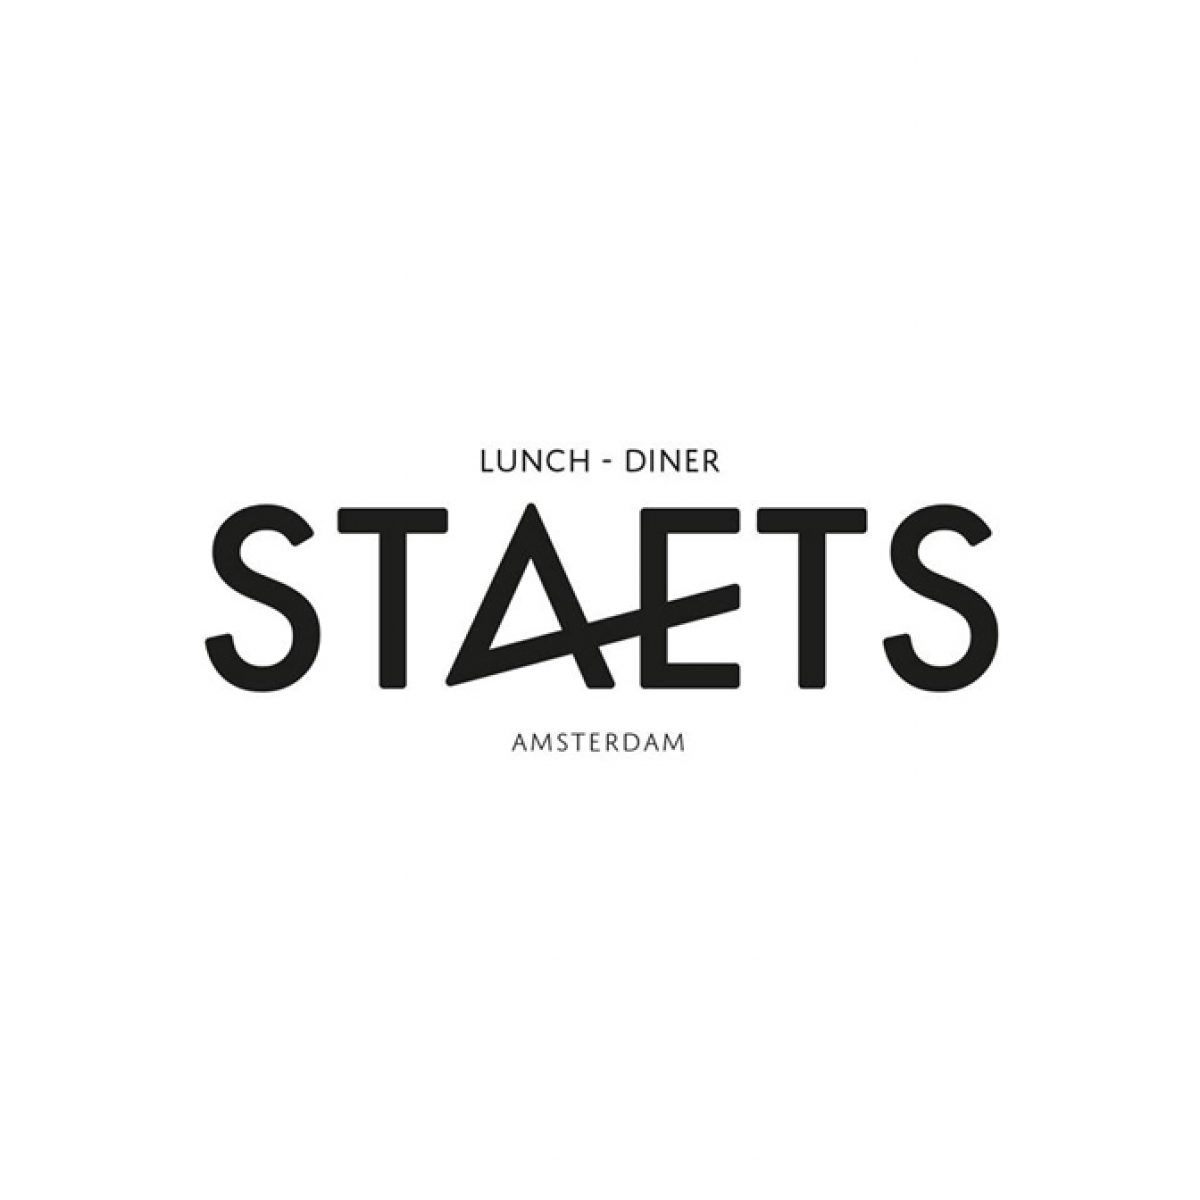 Restaurant Steats -